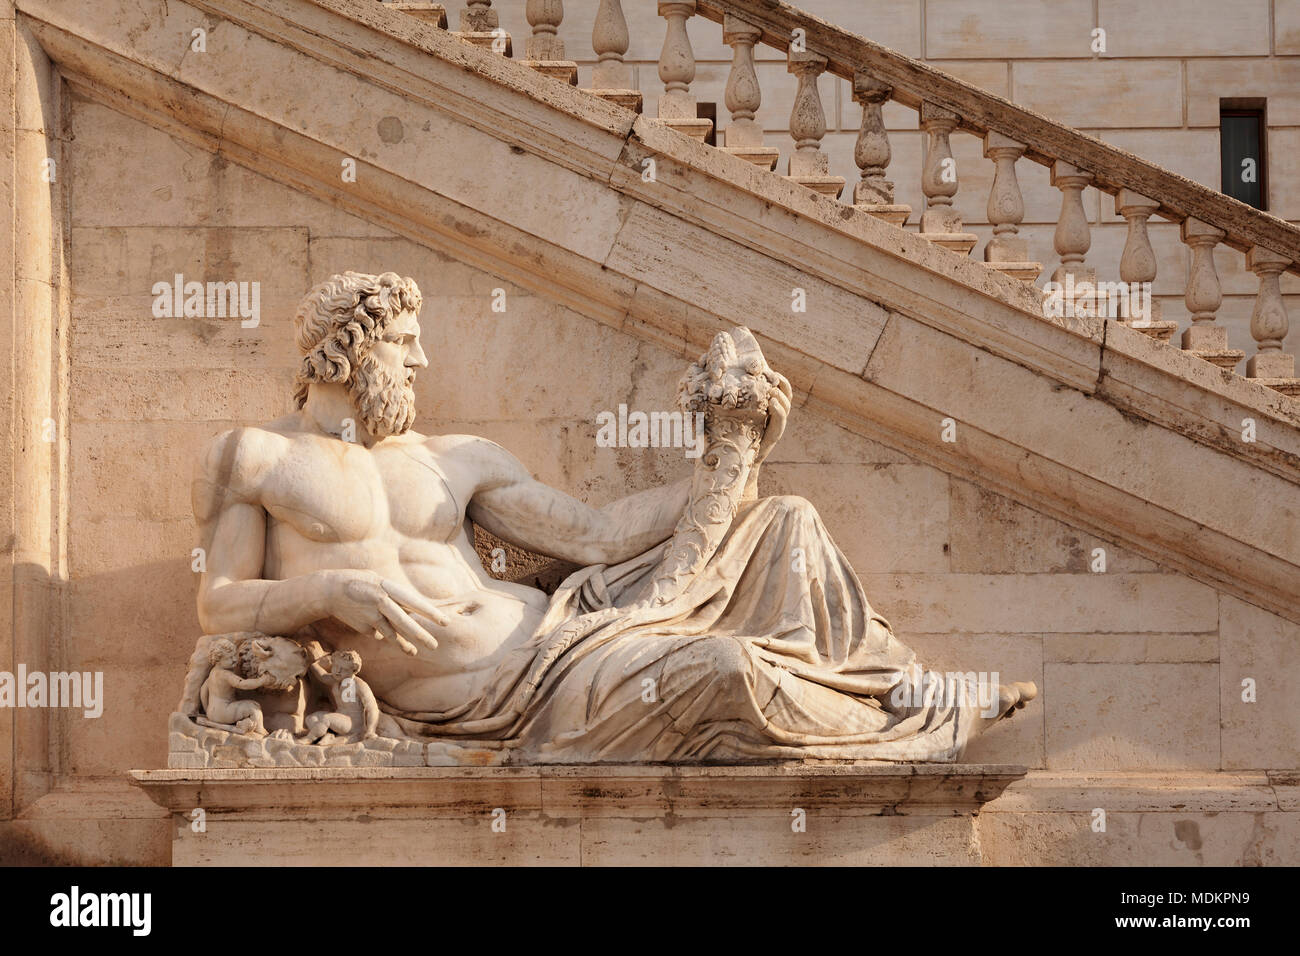 Statue of the Tiber River God on Capitol Square, Piazza del Campidoglio, Rome, Lazio, Italy - Stock Image